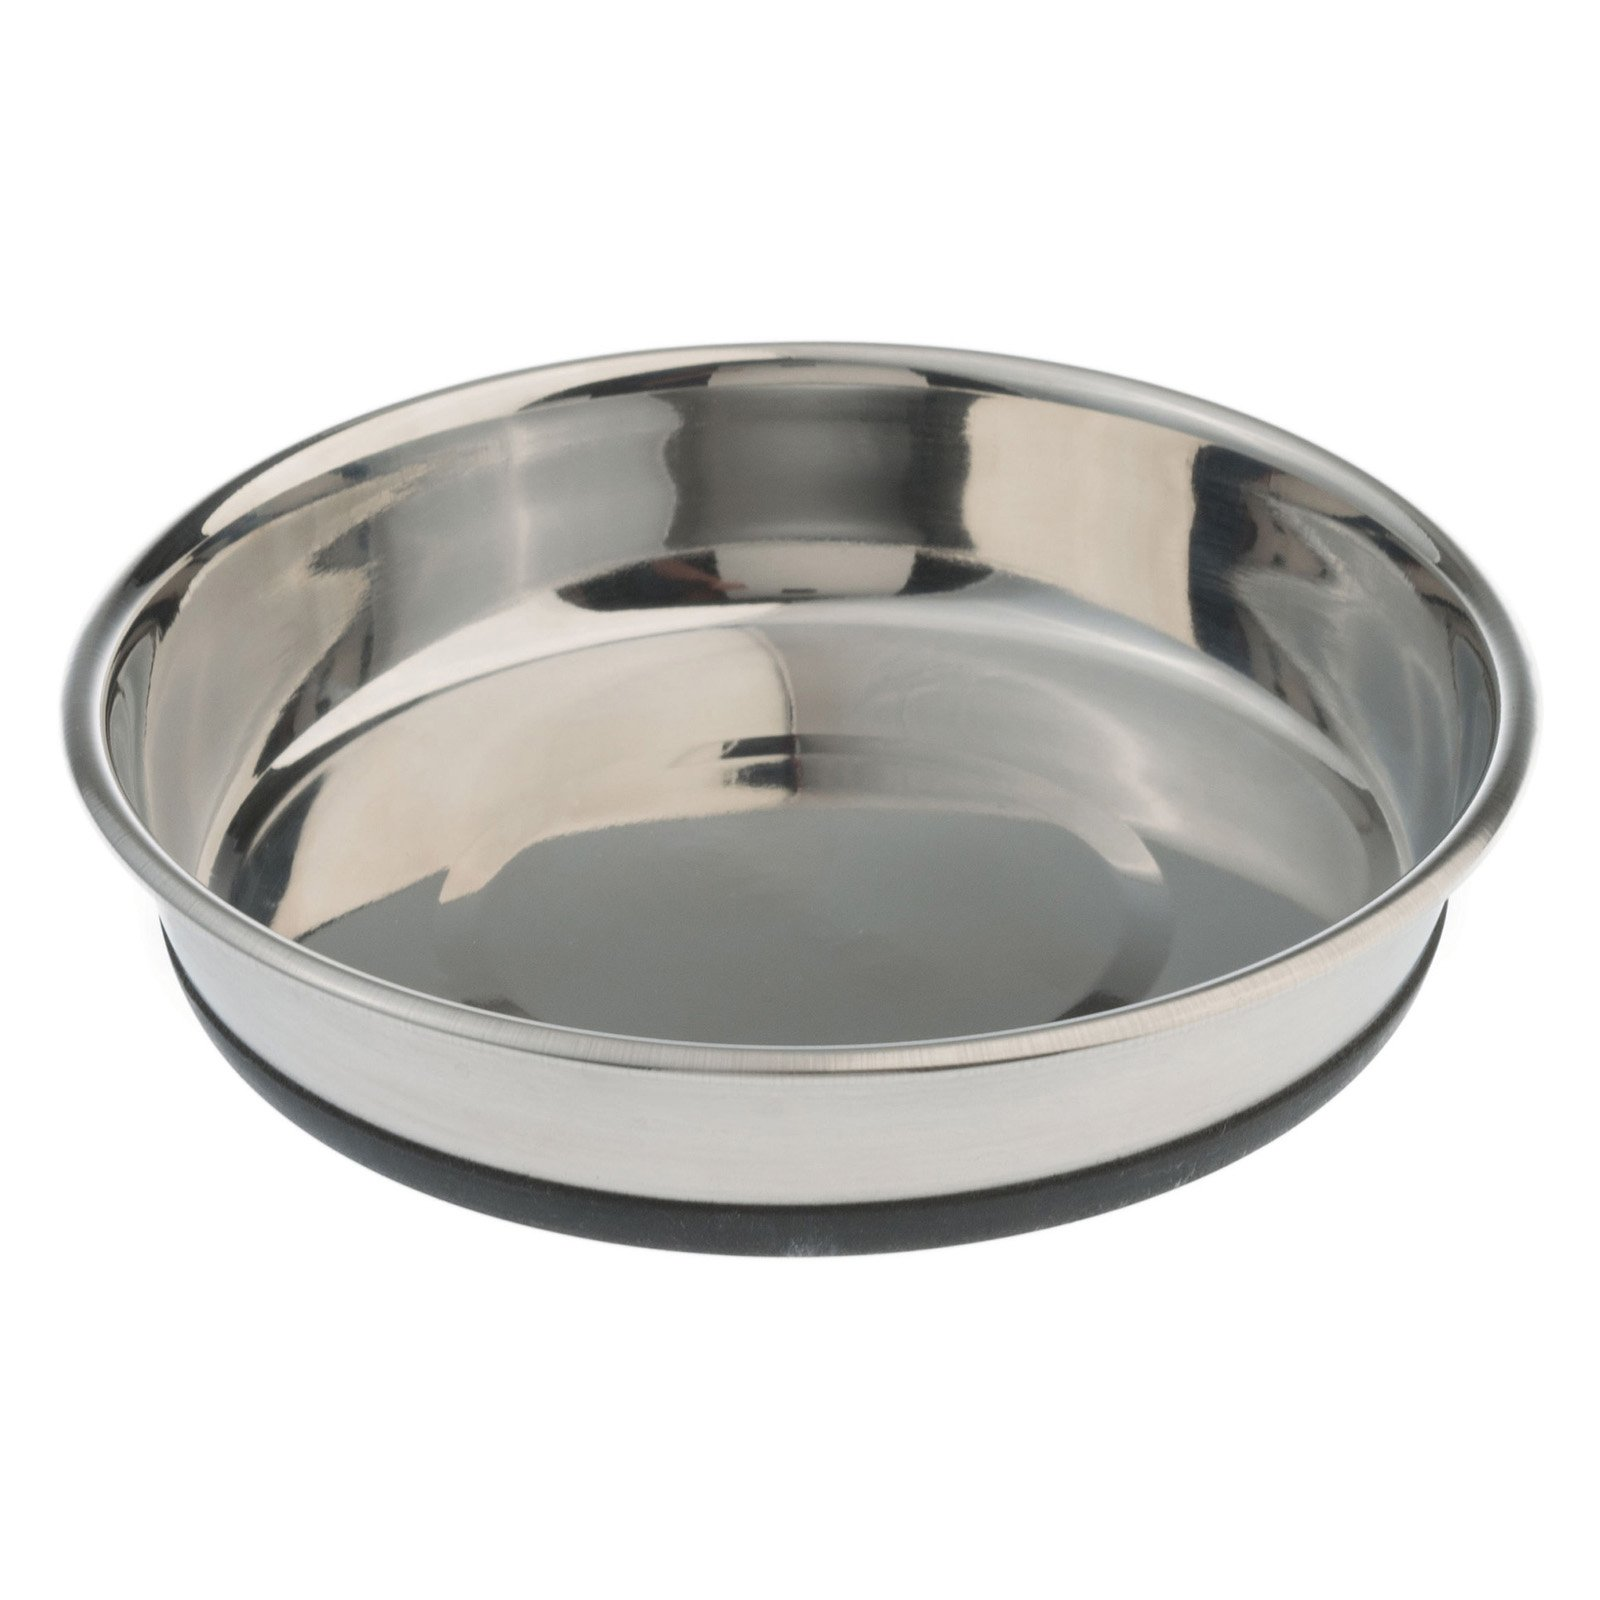 Pet Zone 1550012514 1.5 Cup No-Slip Stainless Steel Cat Dish